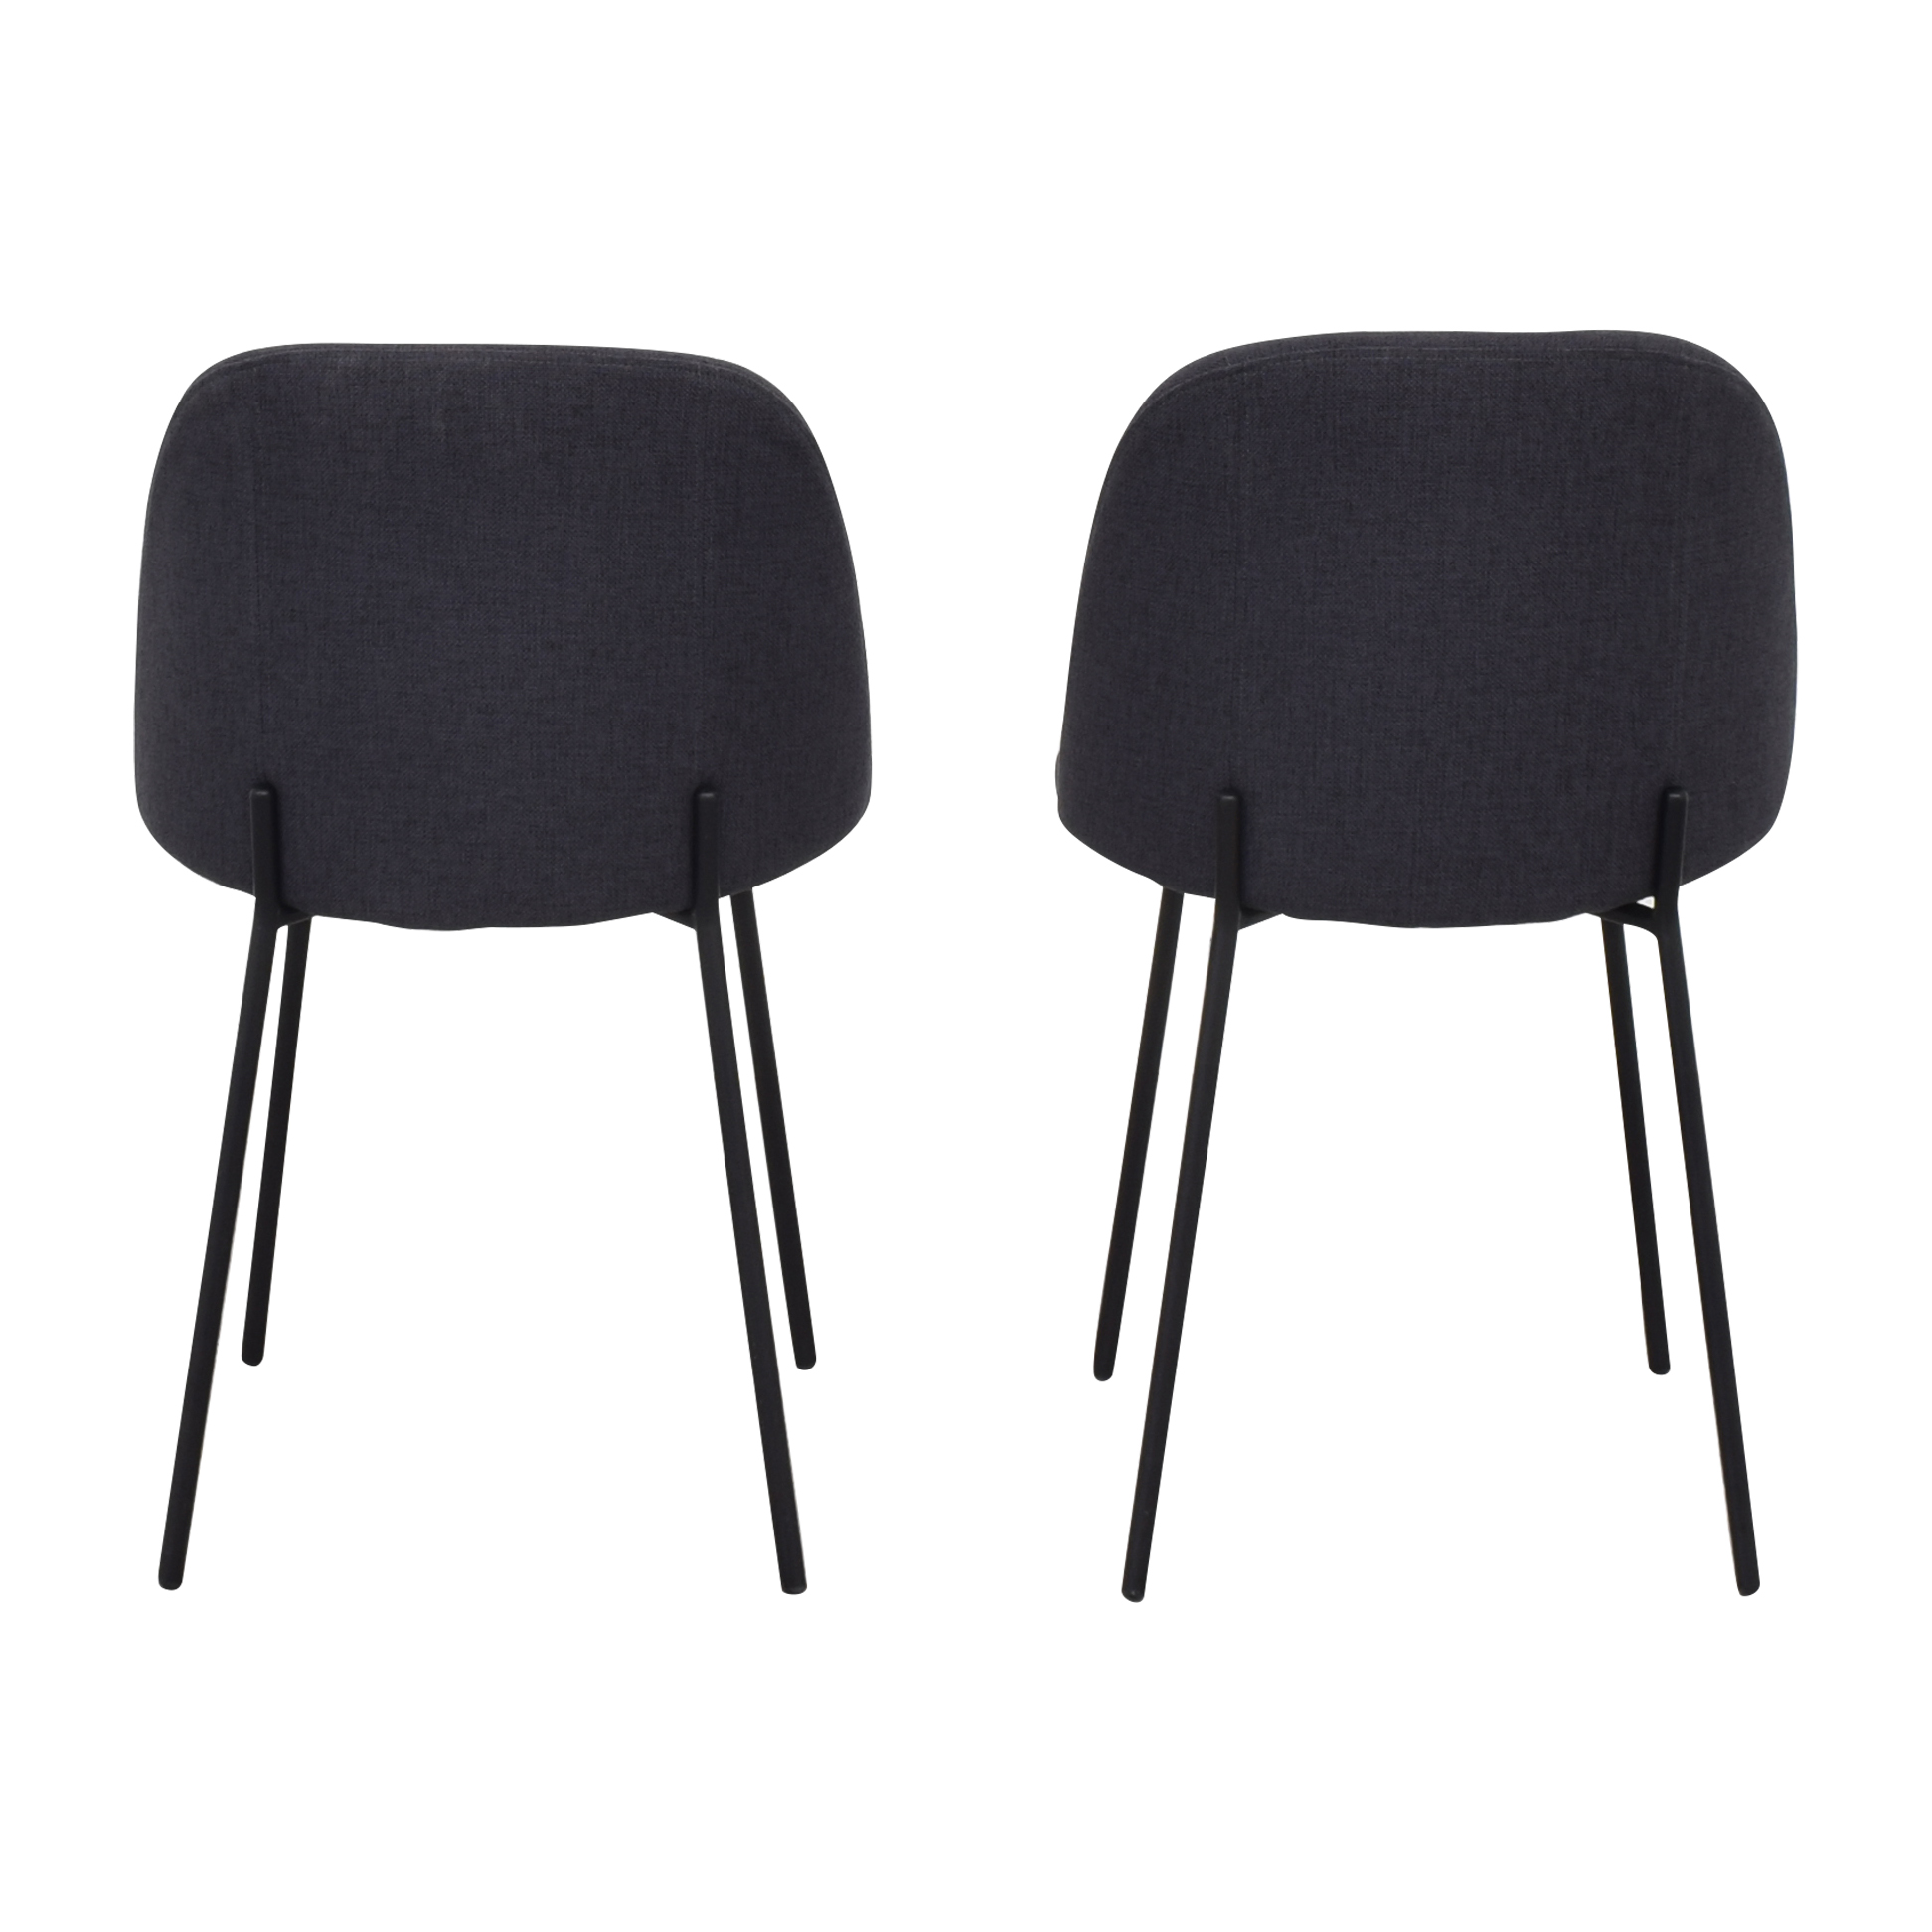 buy Article Ceres Dining Chairs Article